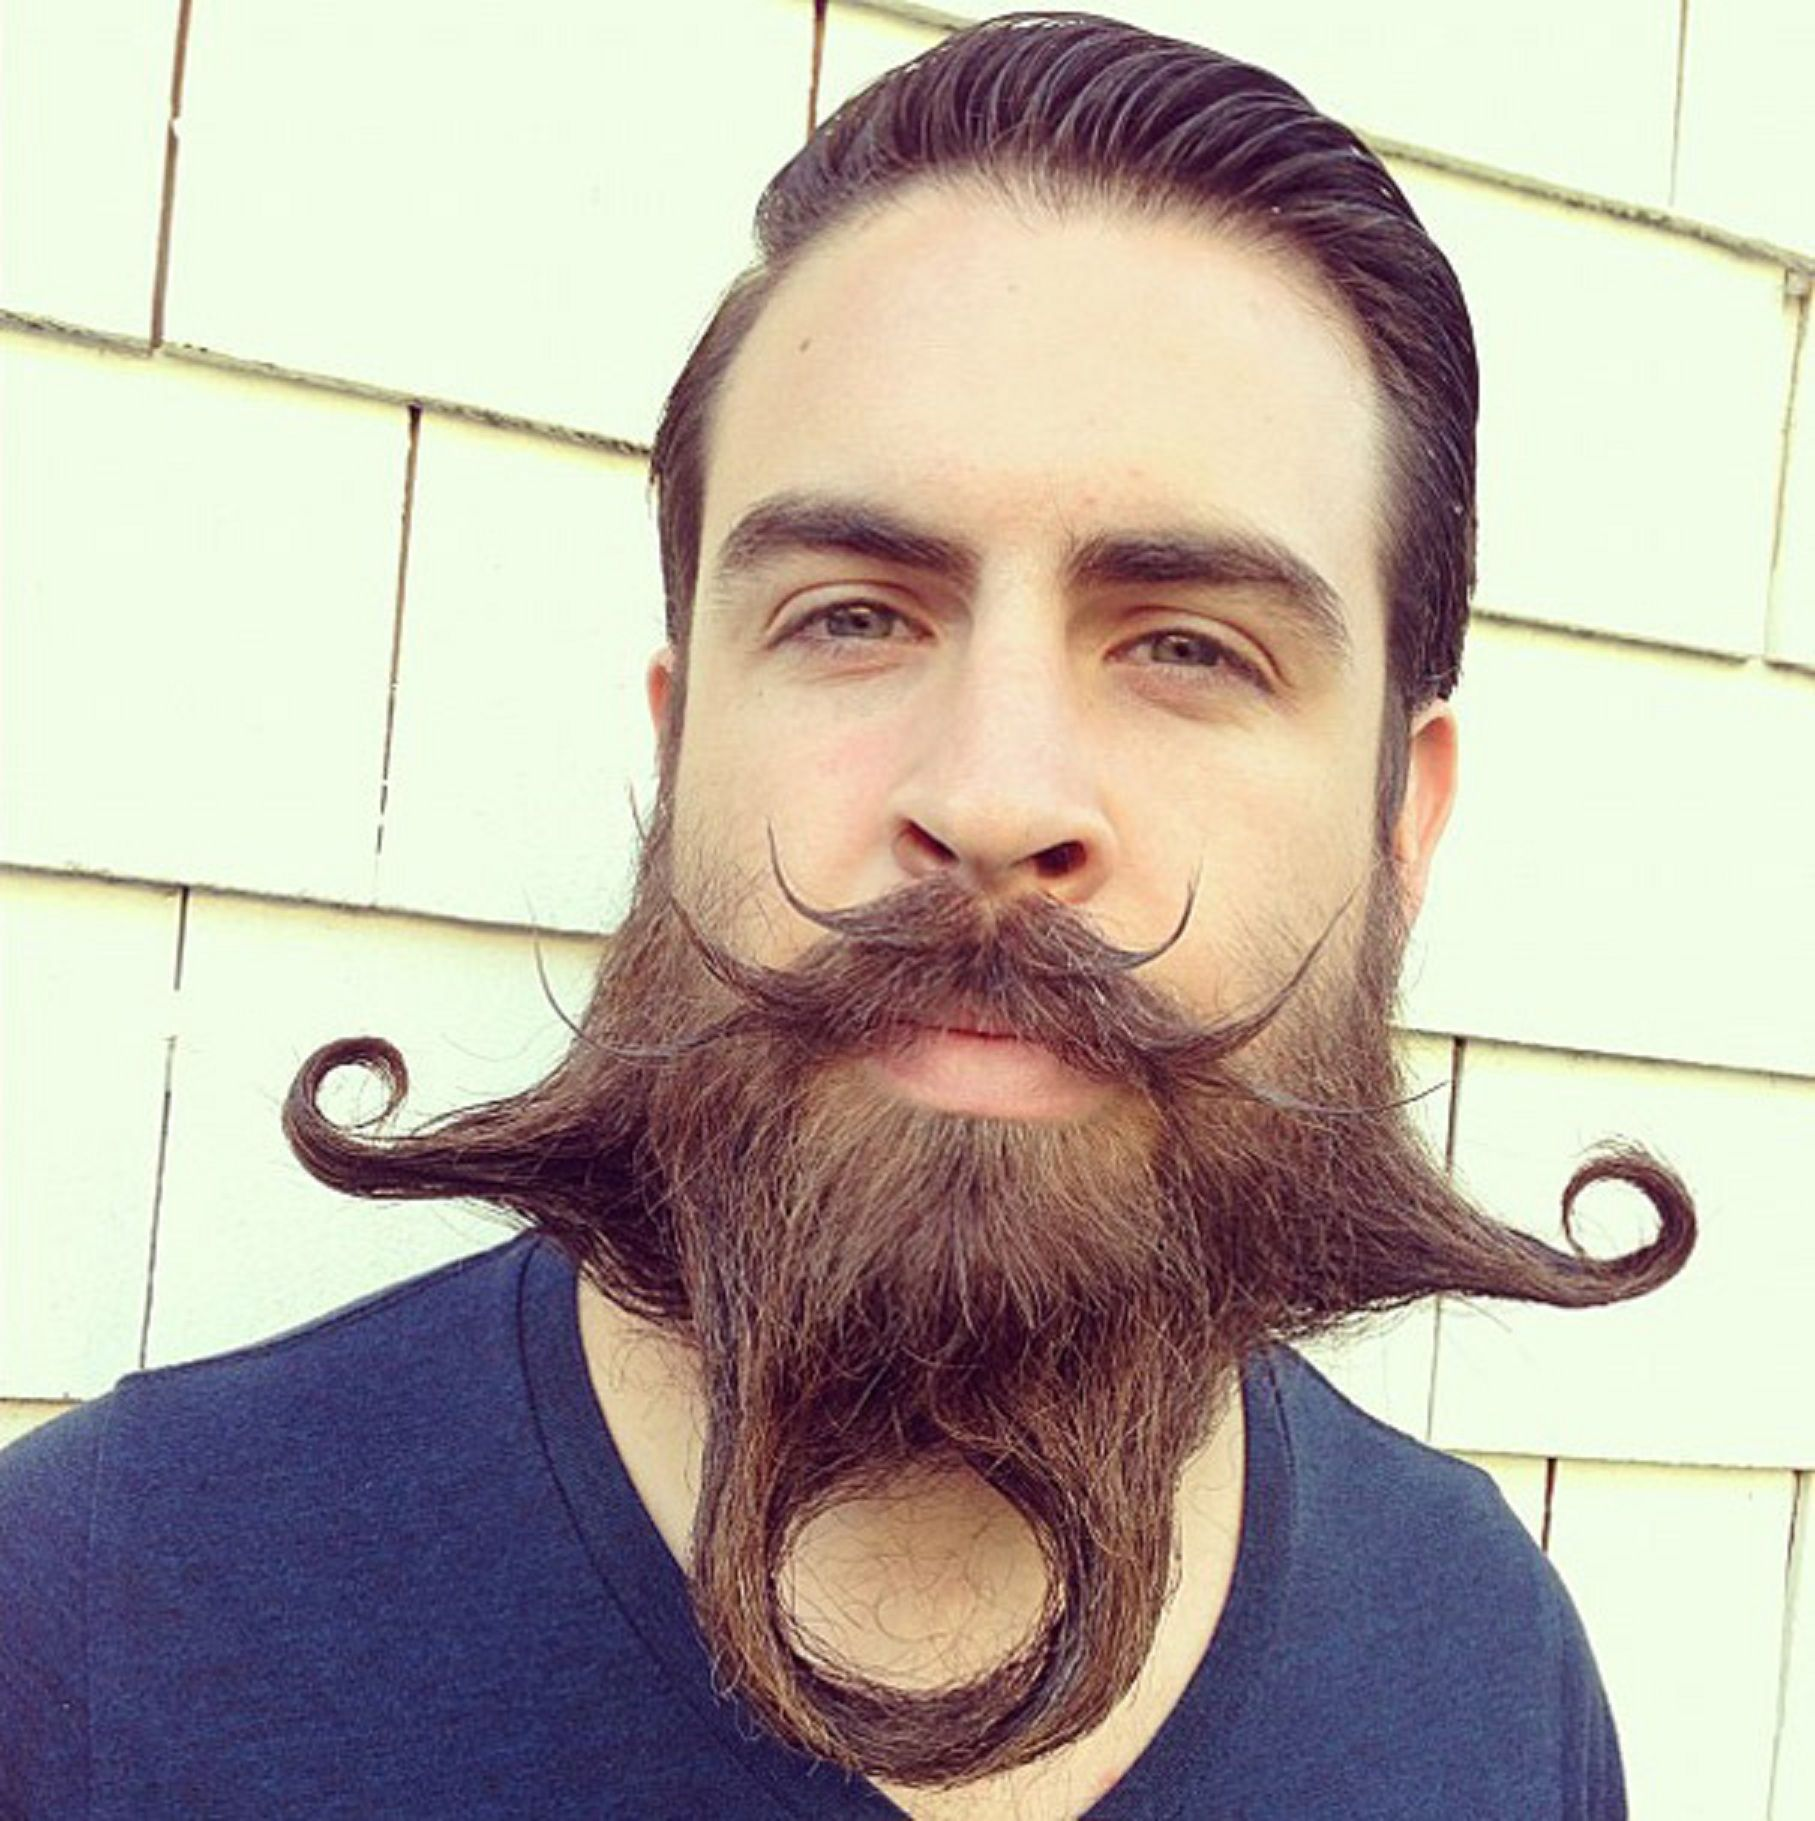 Style Beard Google ძებნა Wwwww Pinterest Goatee - Mr incredibeard really coolest beard ever seen